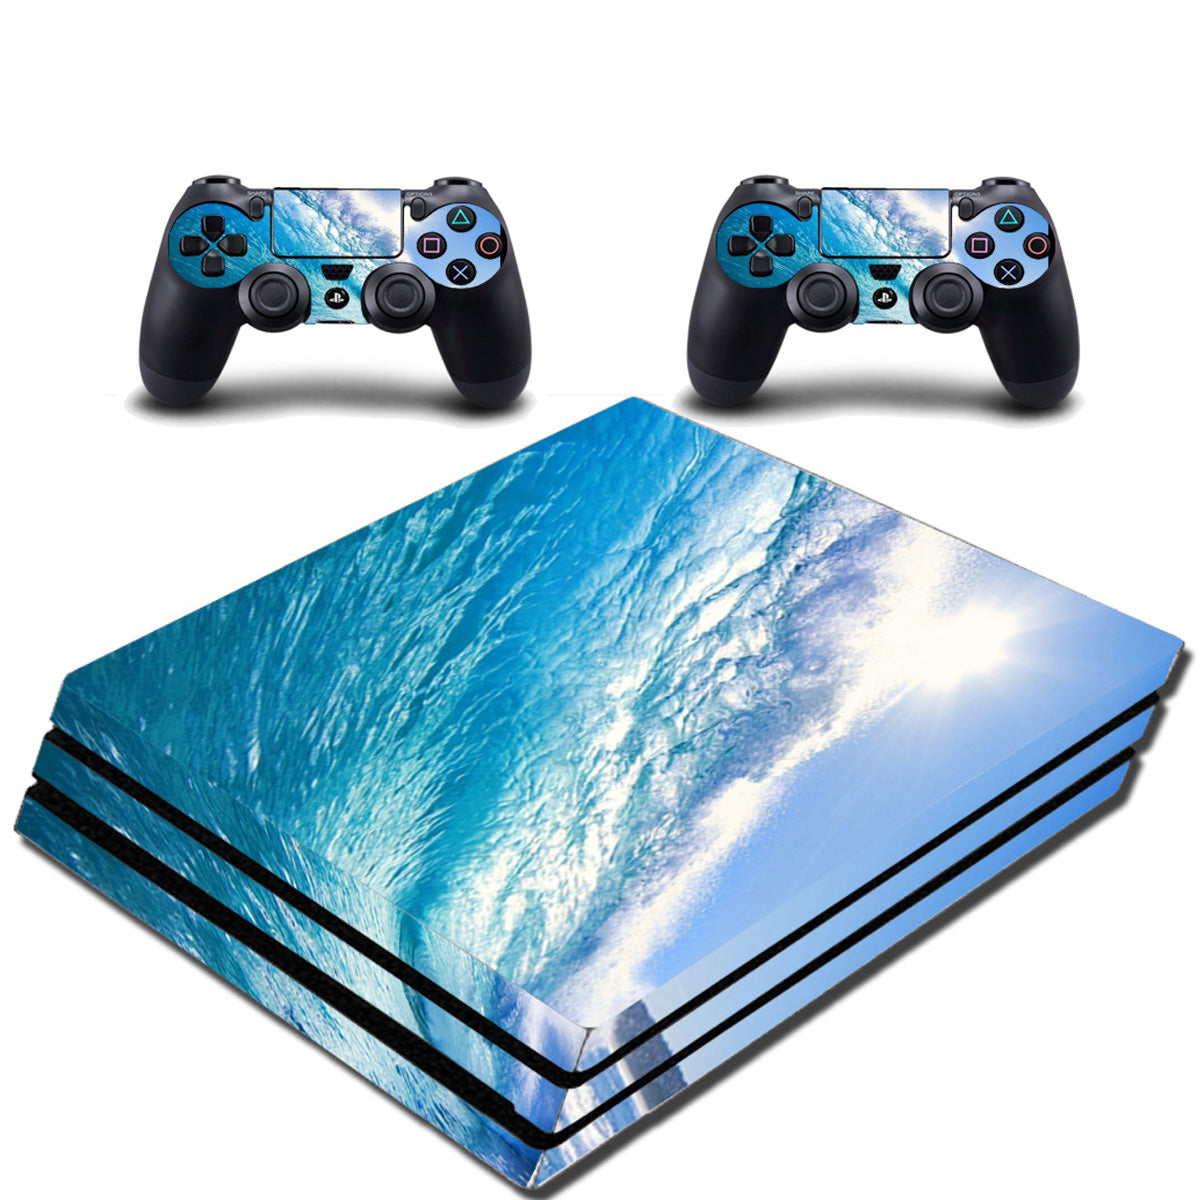 VWAQ PS4 Pro Water Skin Decal Playstation 4 Ocean Vinyl Wrap Skins - VWAQ Vinyl Wall Art Quotes and Prints